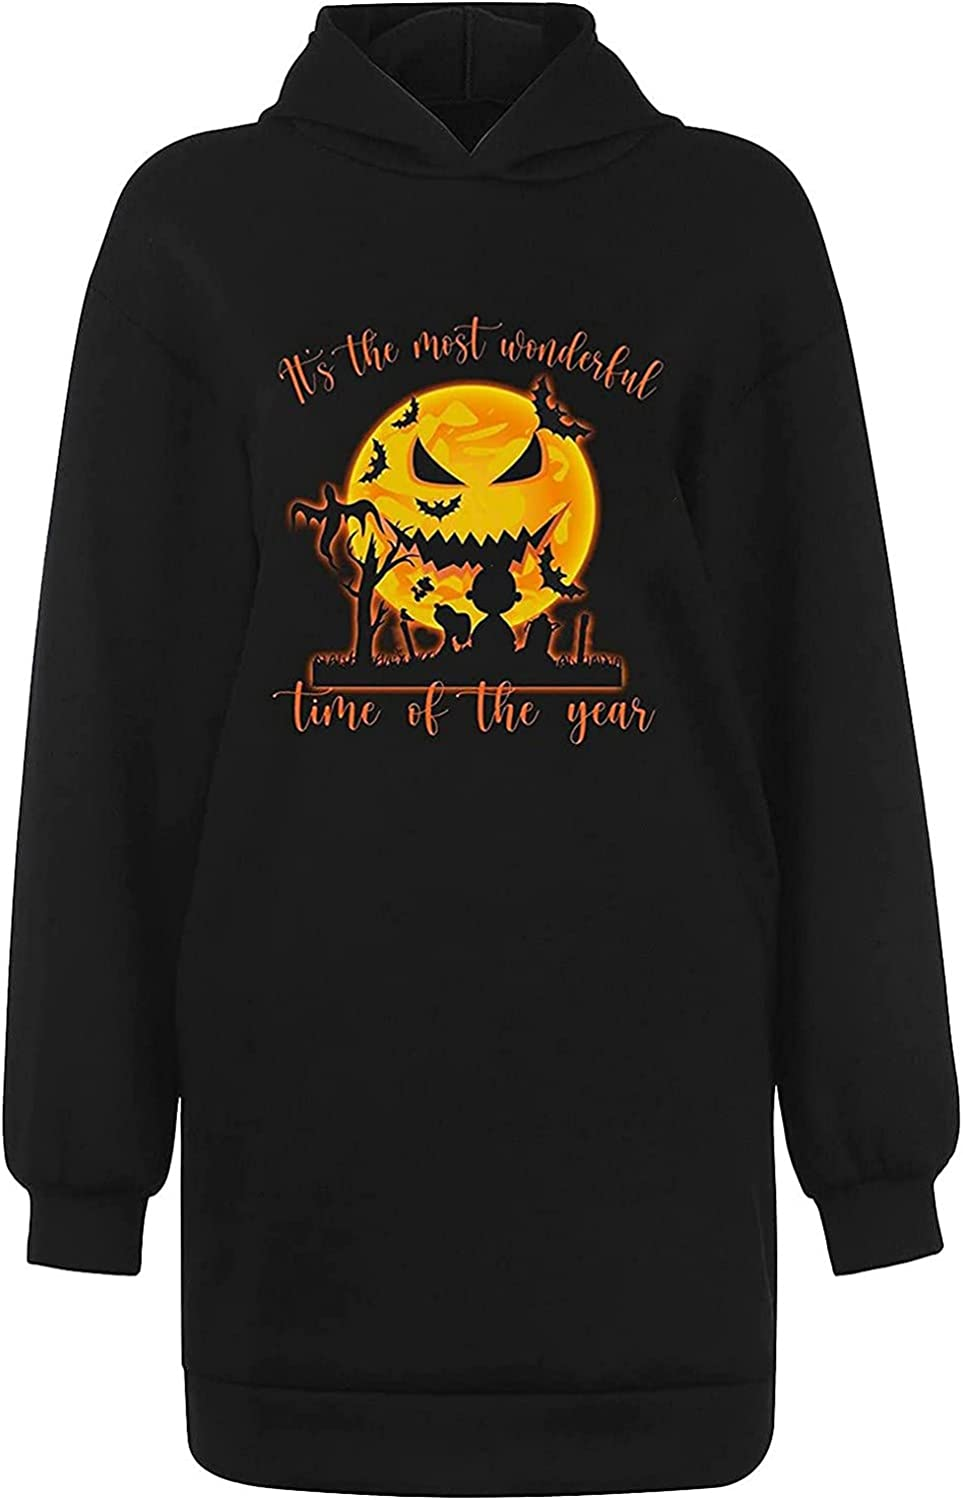 Halloween Spring new work one 2021 spring and summer new after another Women Hoodies Skeleton Pumpkin Print Casual Lo Graphic